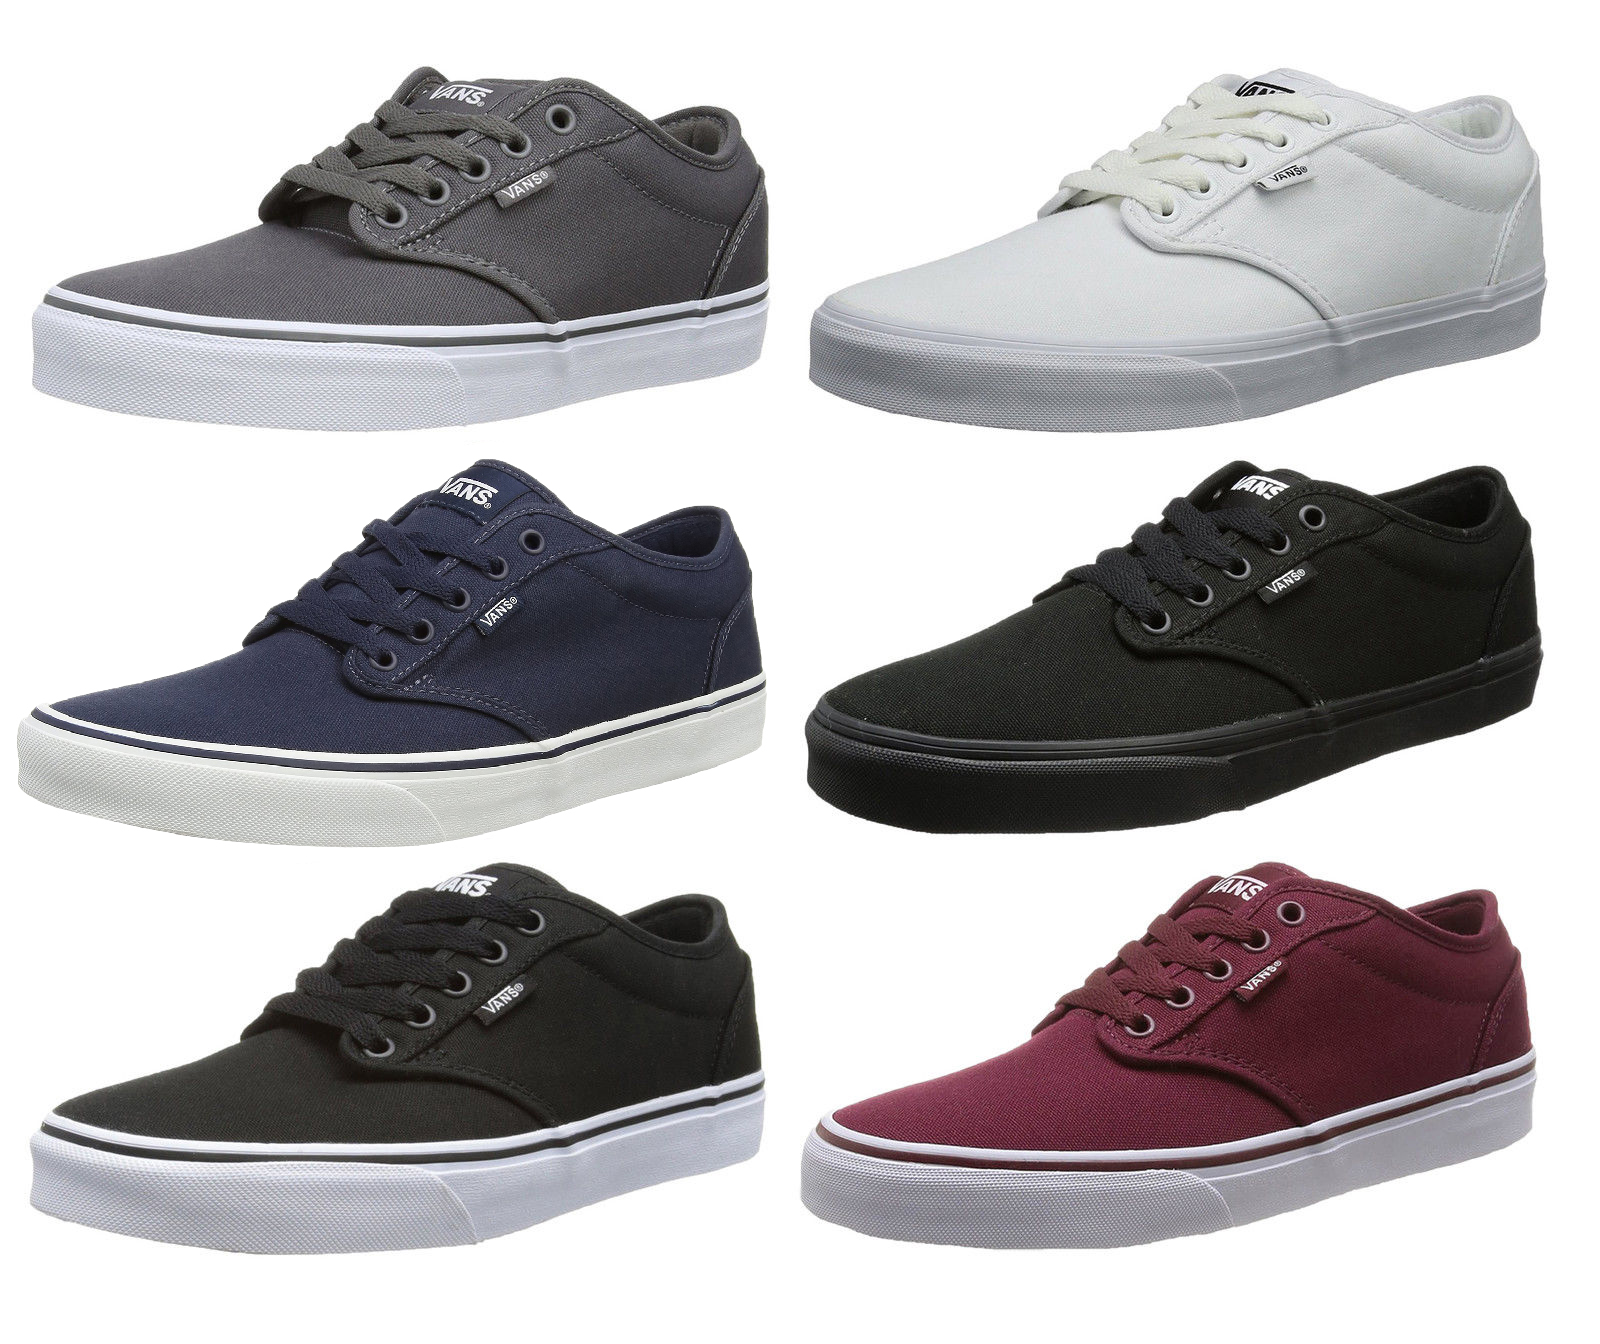 8433bf5c59 VANS Atwood Canvas Fashion Skater Shoes Plimsolls Grey Navy Black ...